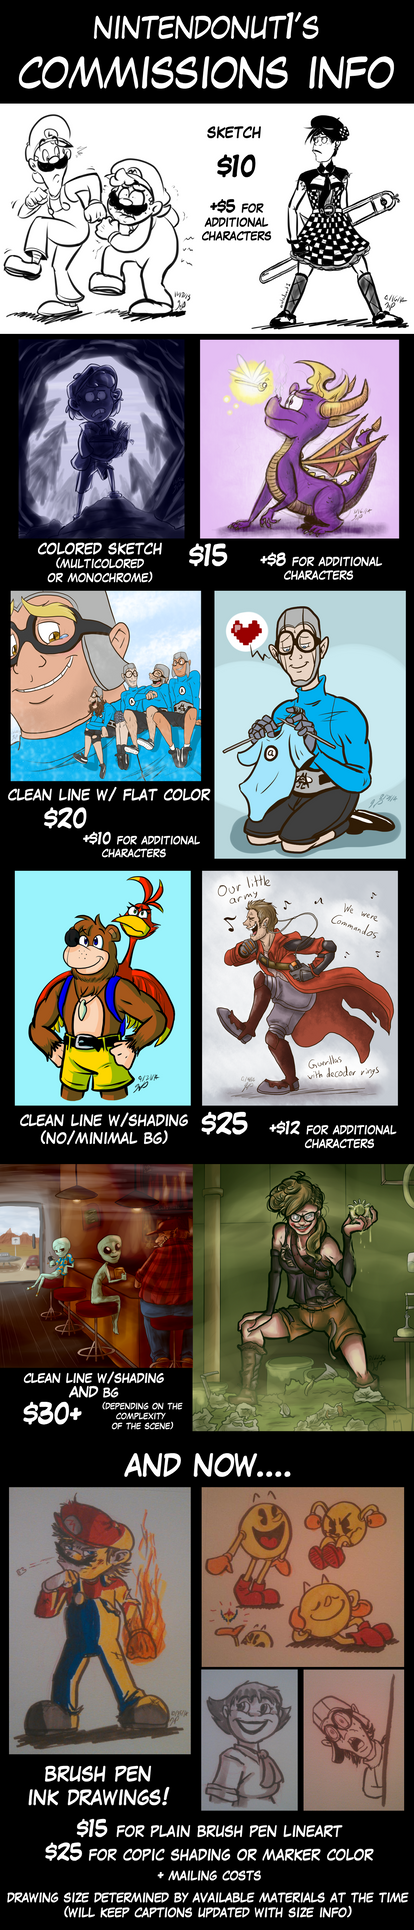 NUTTY'S COMMISSIONS v2 by Nintendo-Nut1